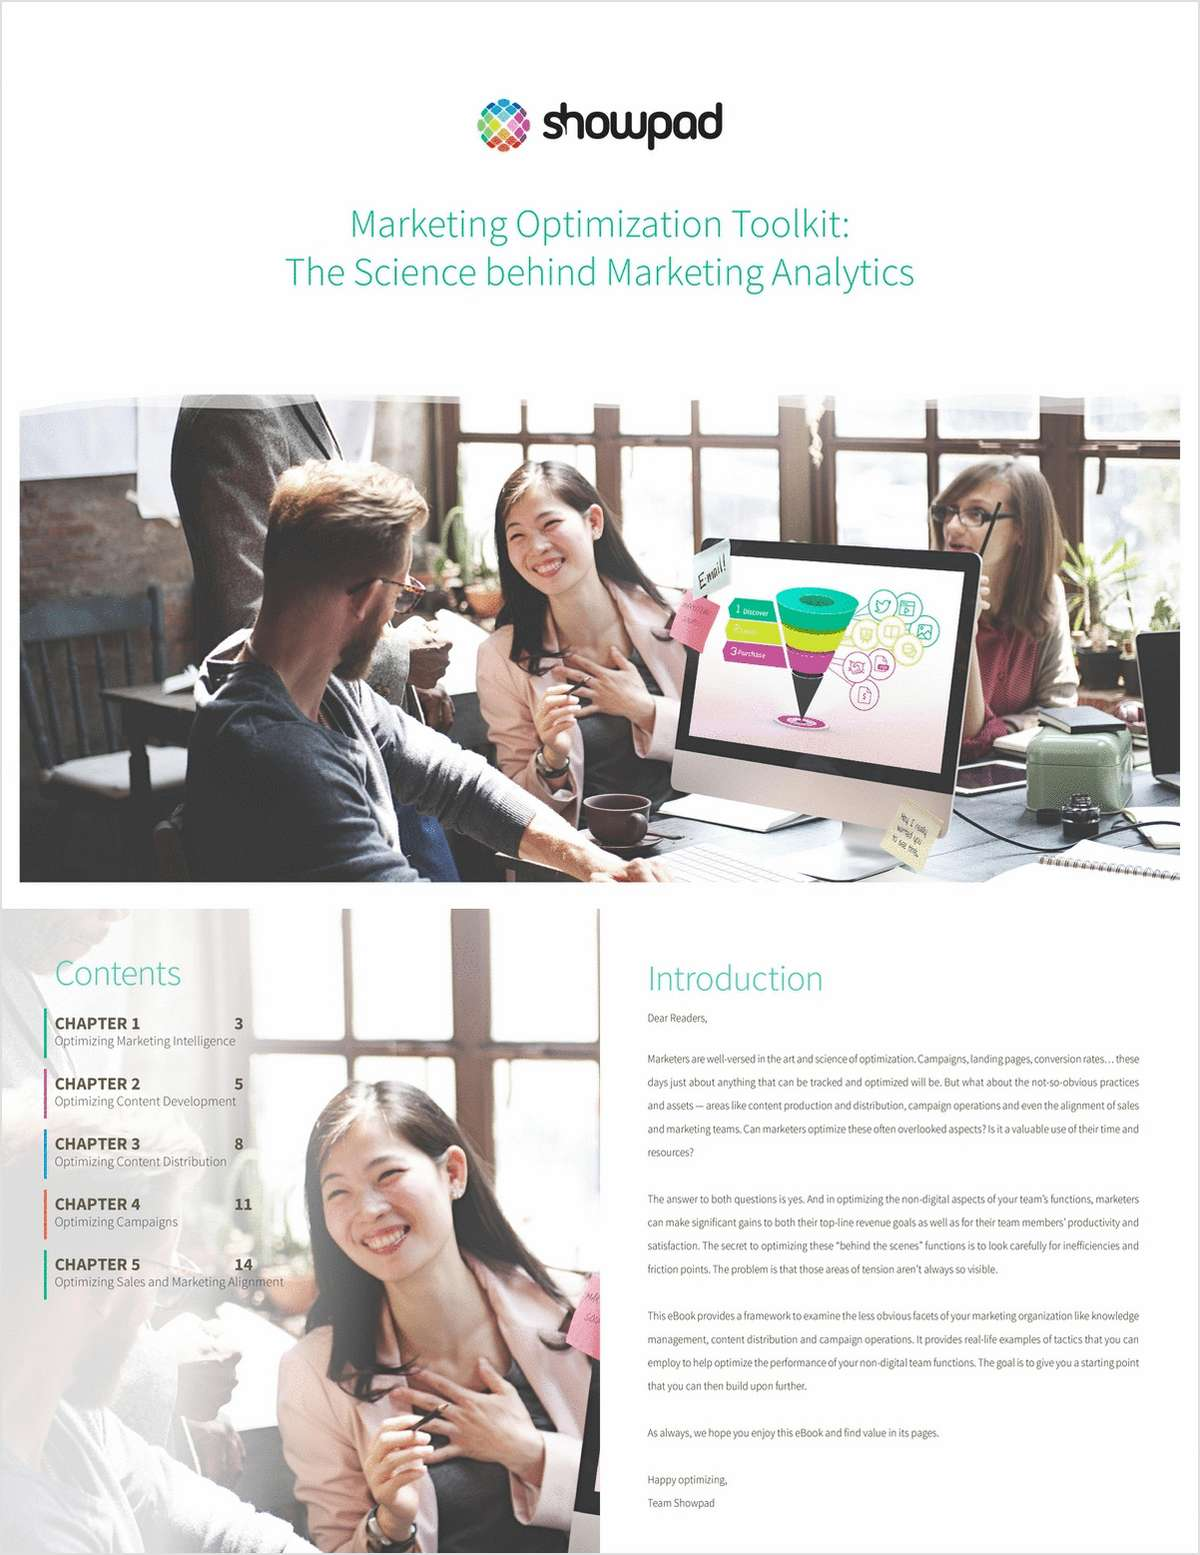 Marketing Optimization Toolkit: The Science behind Marketing Analytics